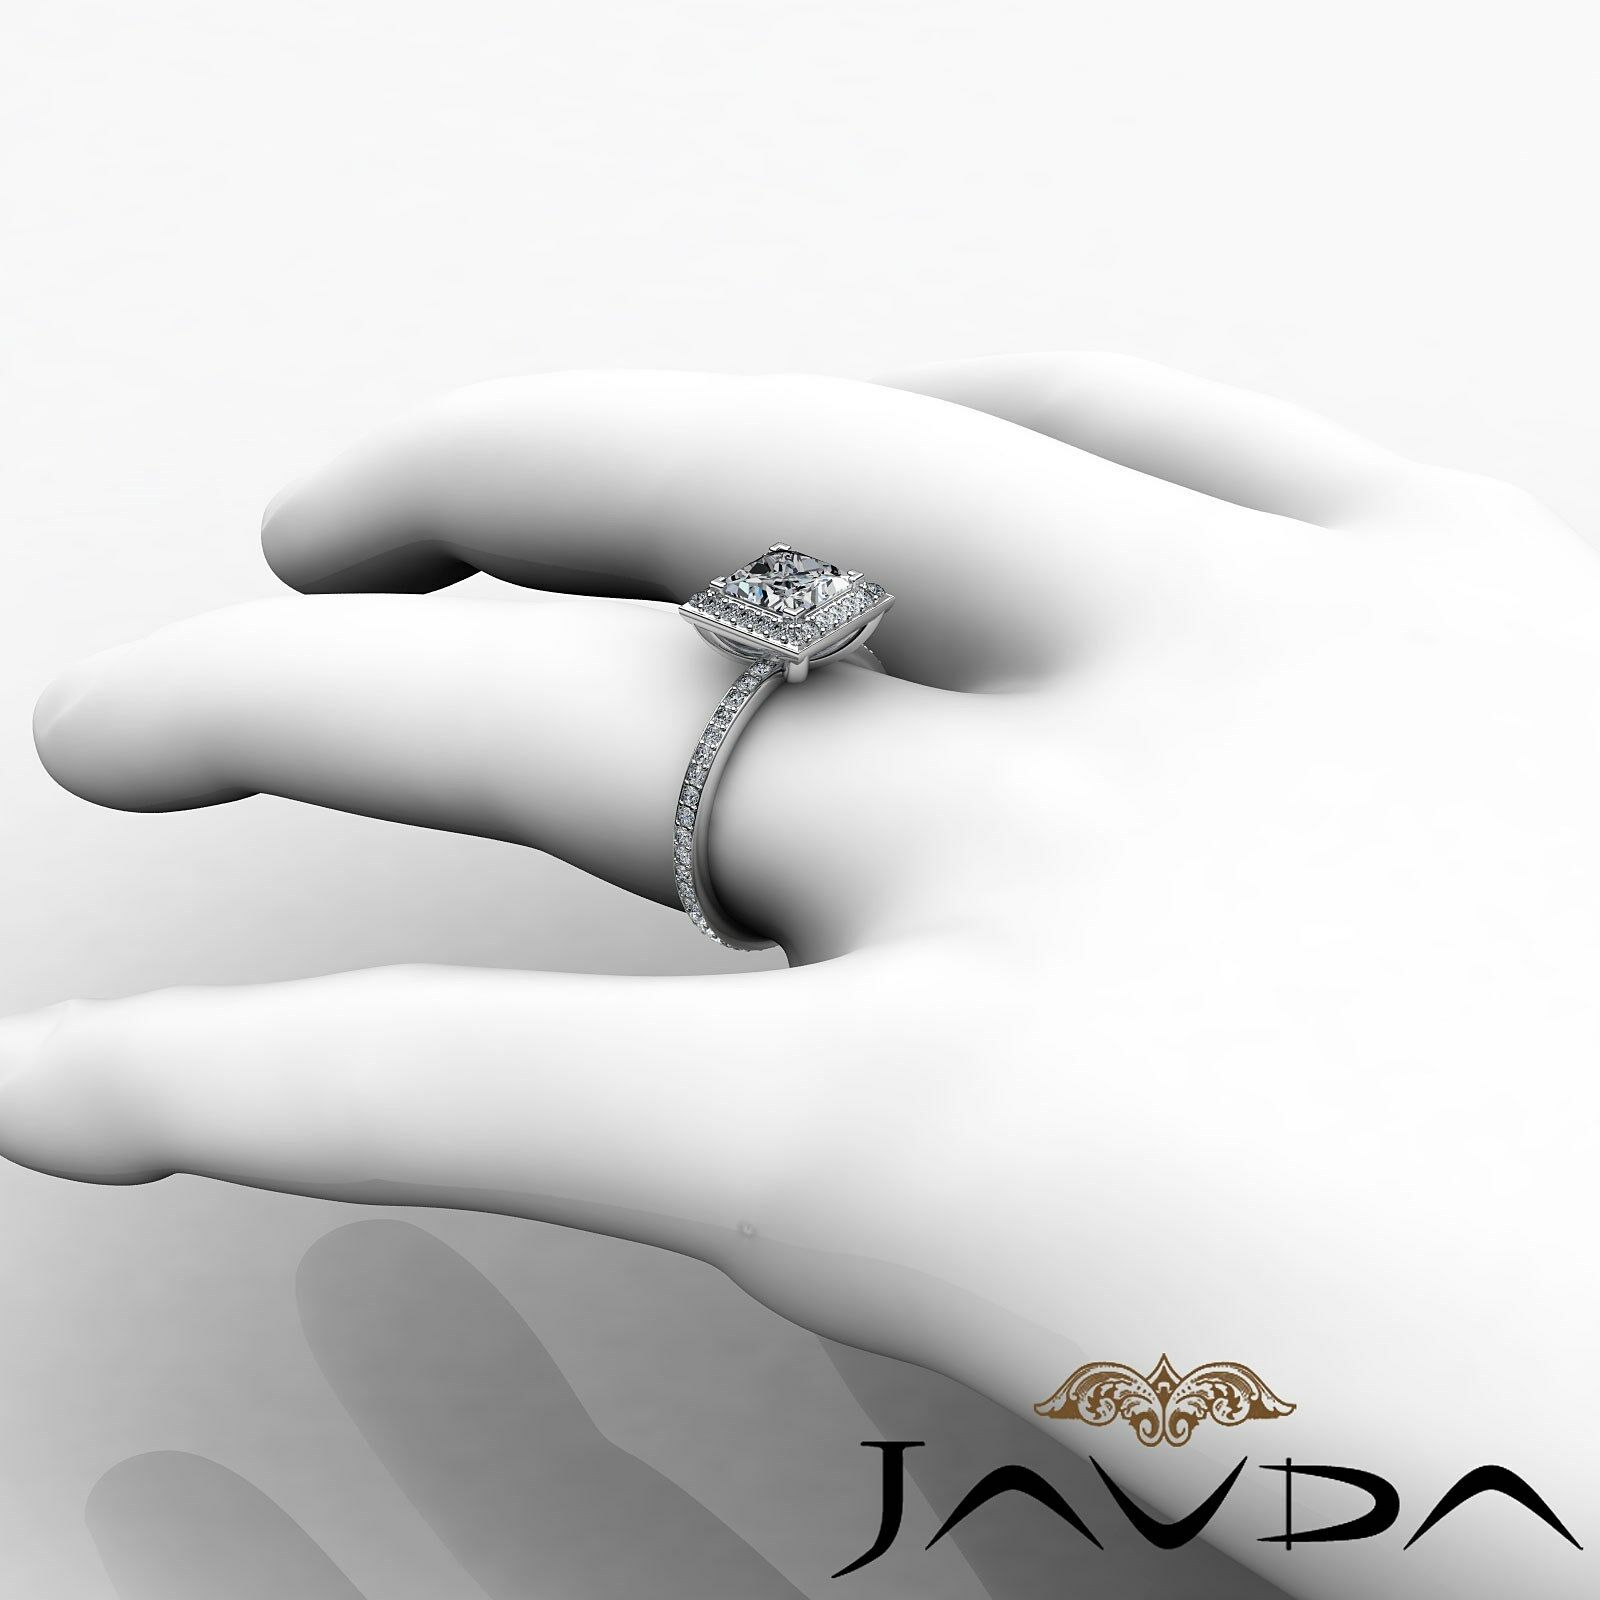 Halo Pave Set Princess Cut Diamond Engagement Ring GIA G Color VS1 Clarity 2.5Ct 4